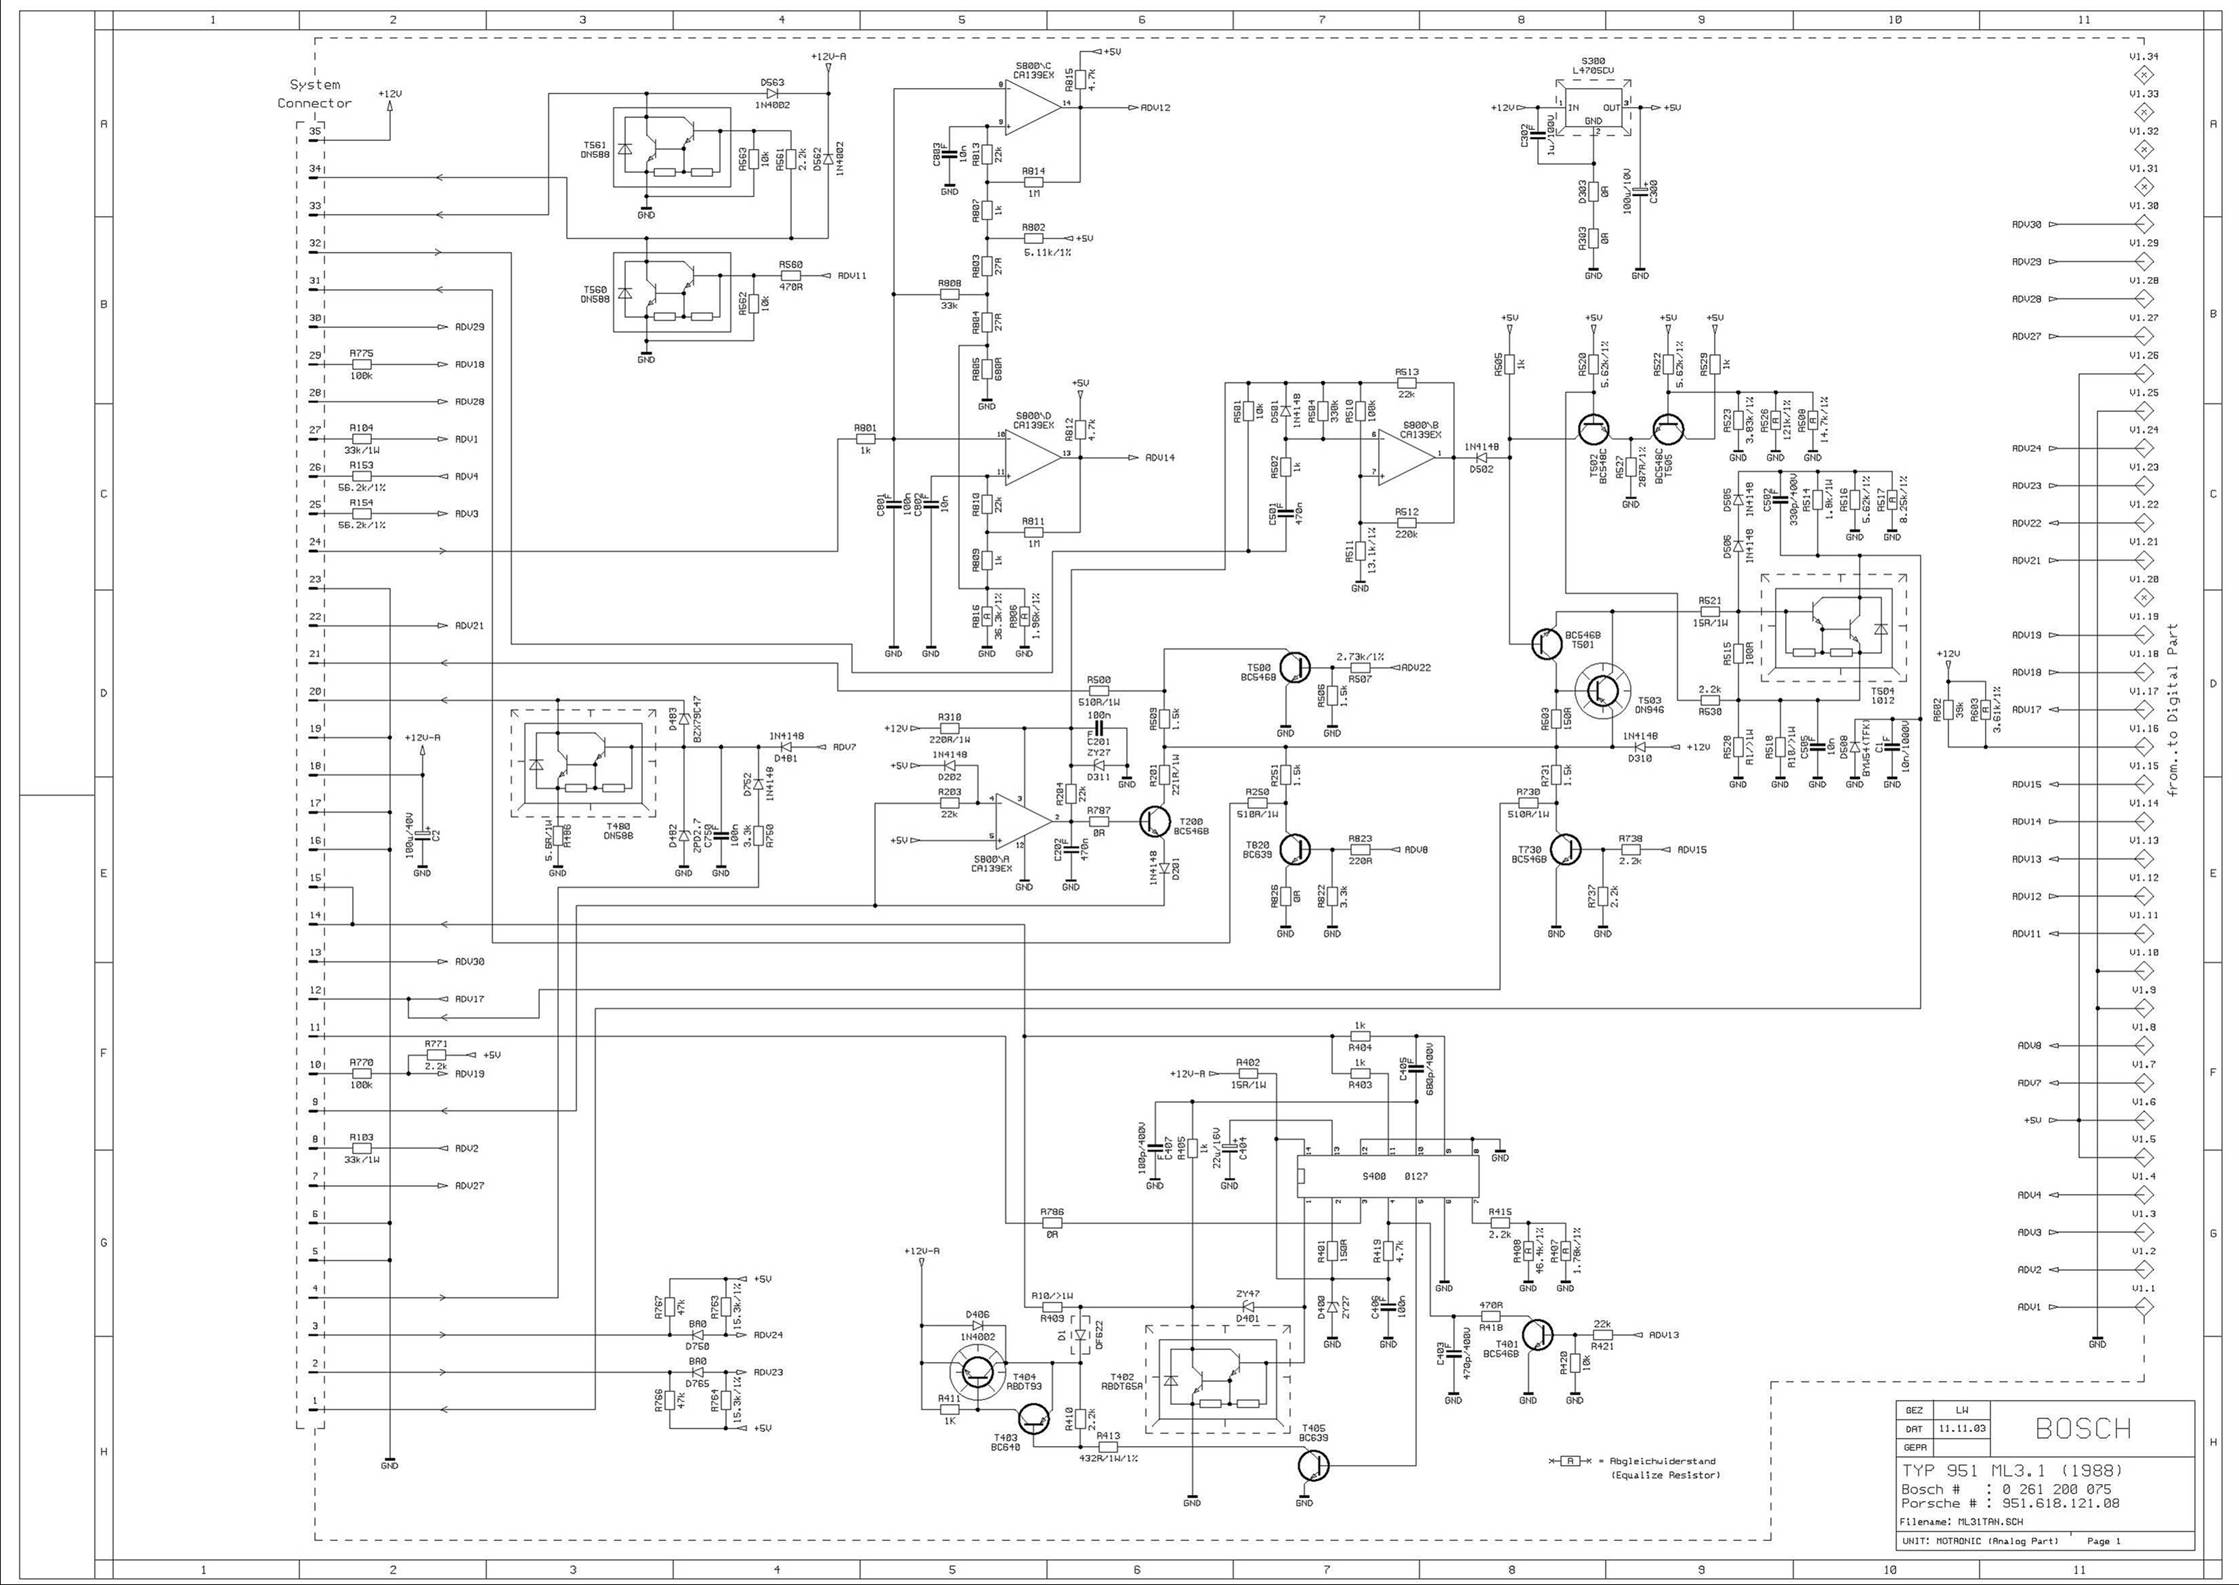 Dme Wiring Diagram Mastering 4 Channel Speaker Epic 400 Watts Full Range 944 Turbo Rh Clarks Garage Com 964 E36